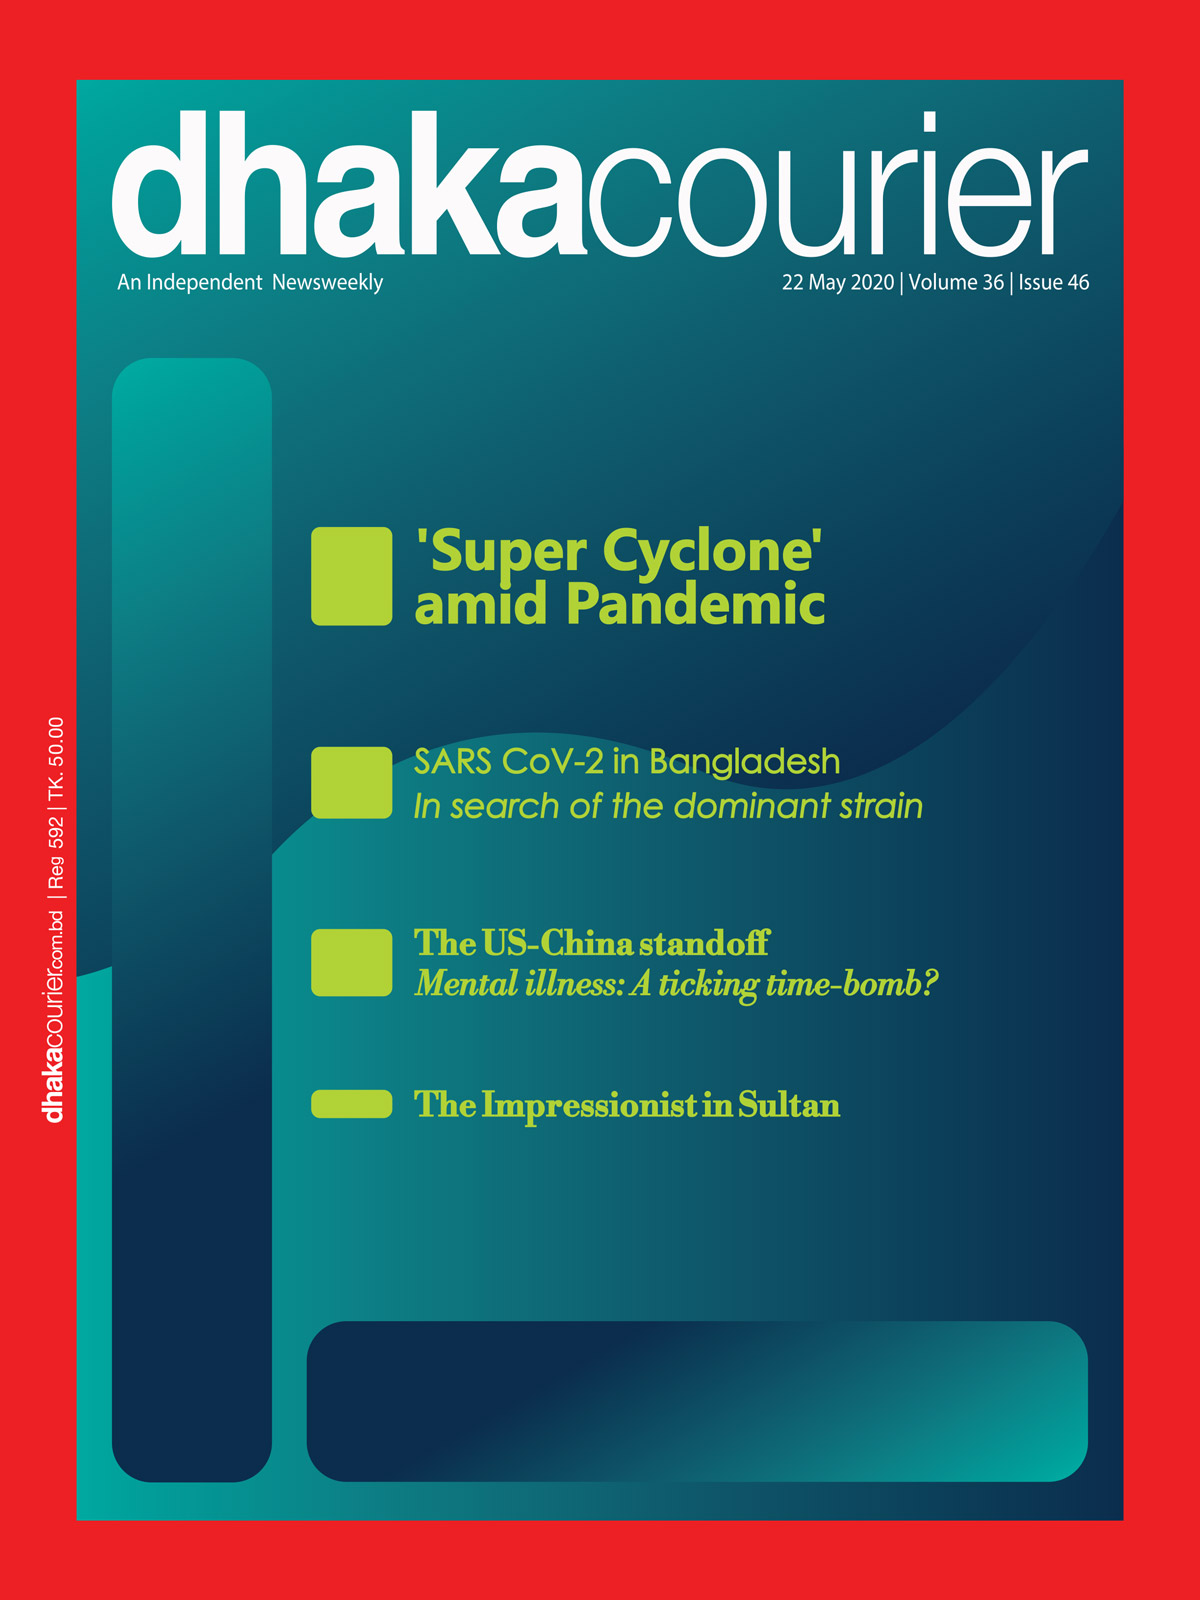 DhakaCourier Vol 36 Issue 46